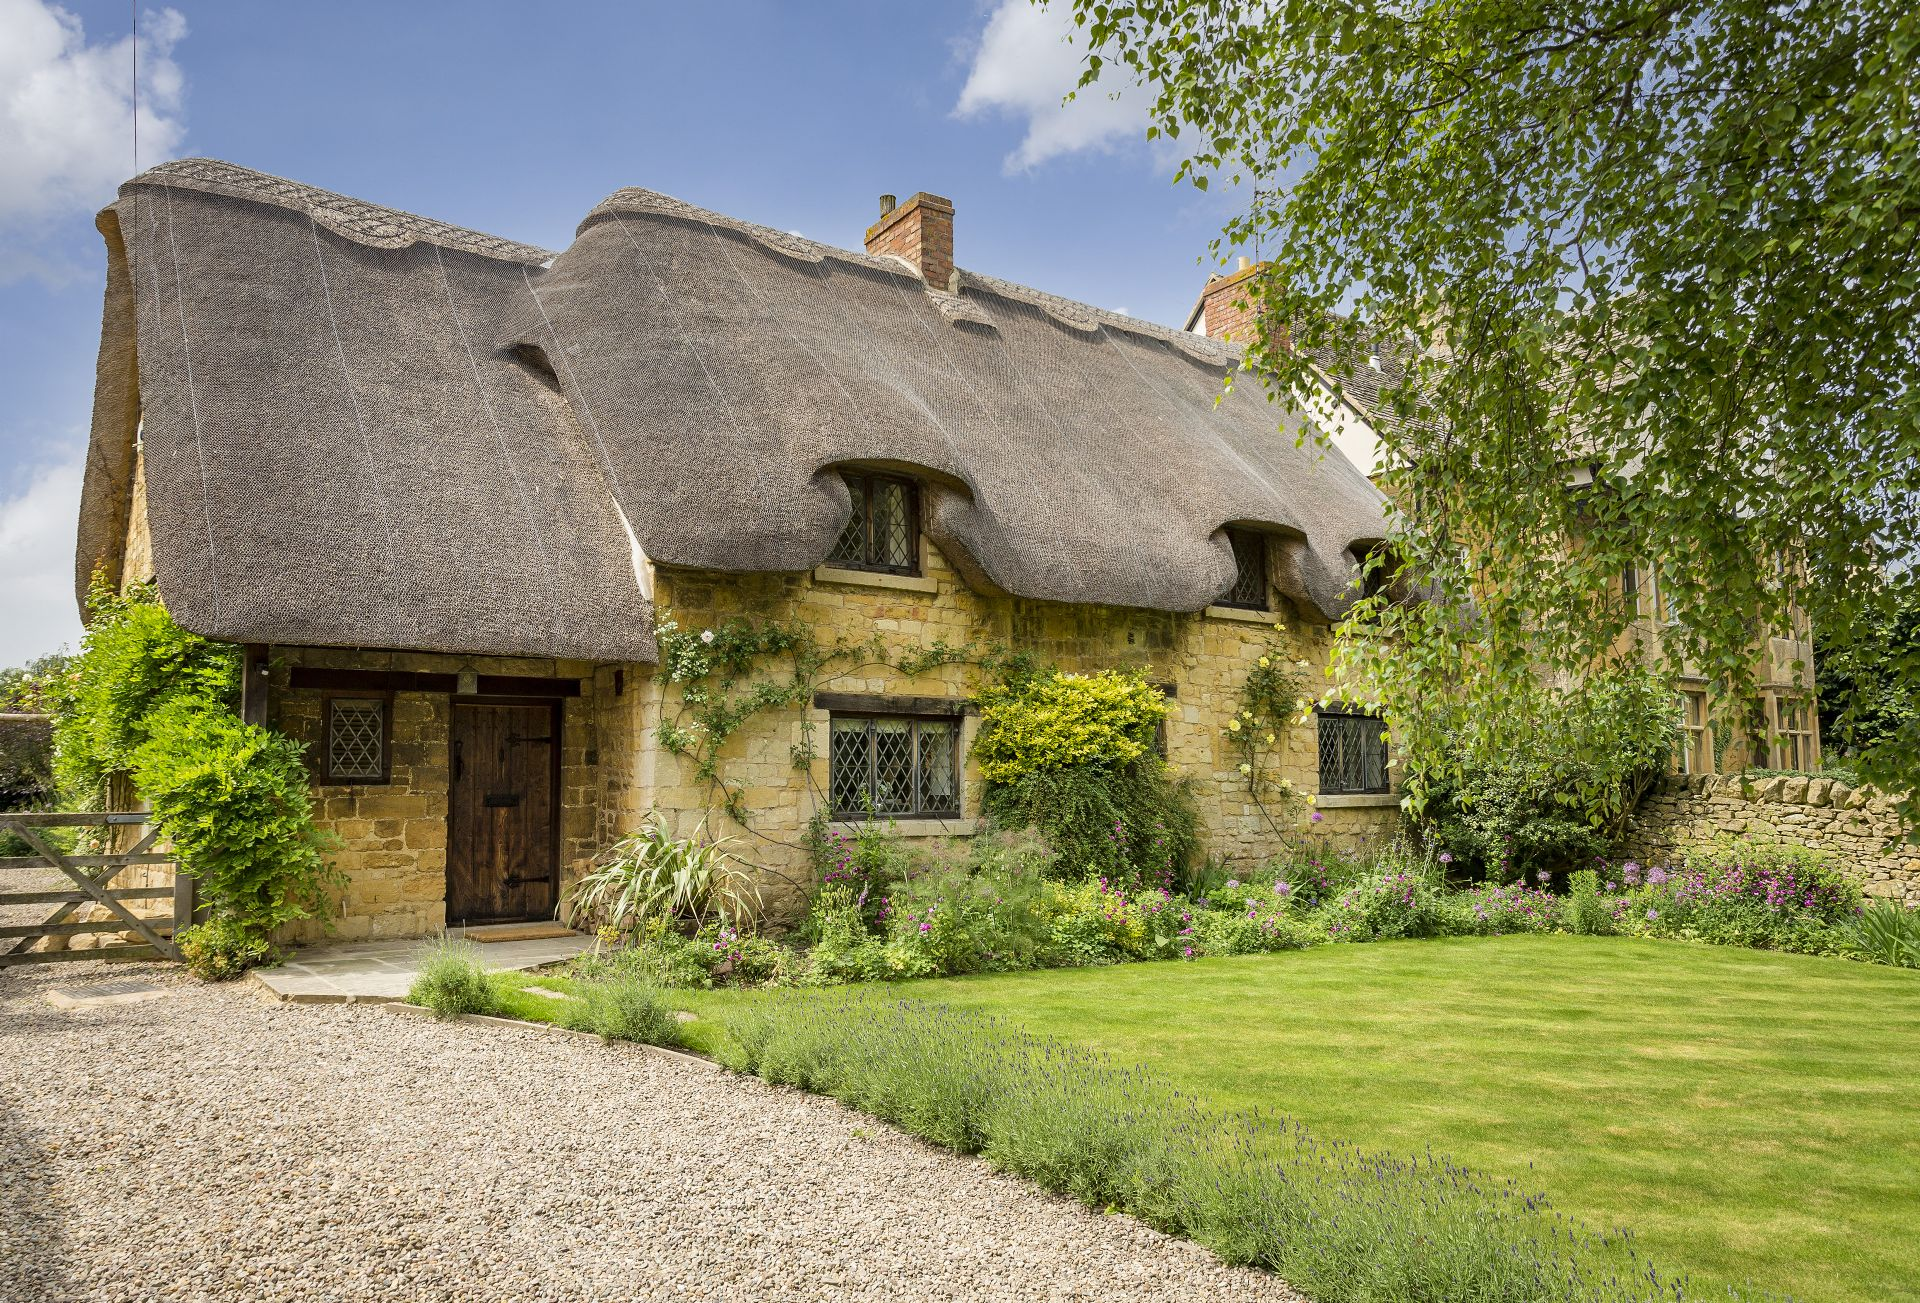 A stunning home away from home, St Michael's Cottage has been painstakingly restored by the present owners to provide boutique style accommodation in an historic setting